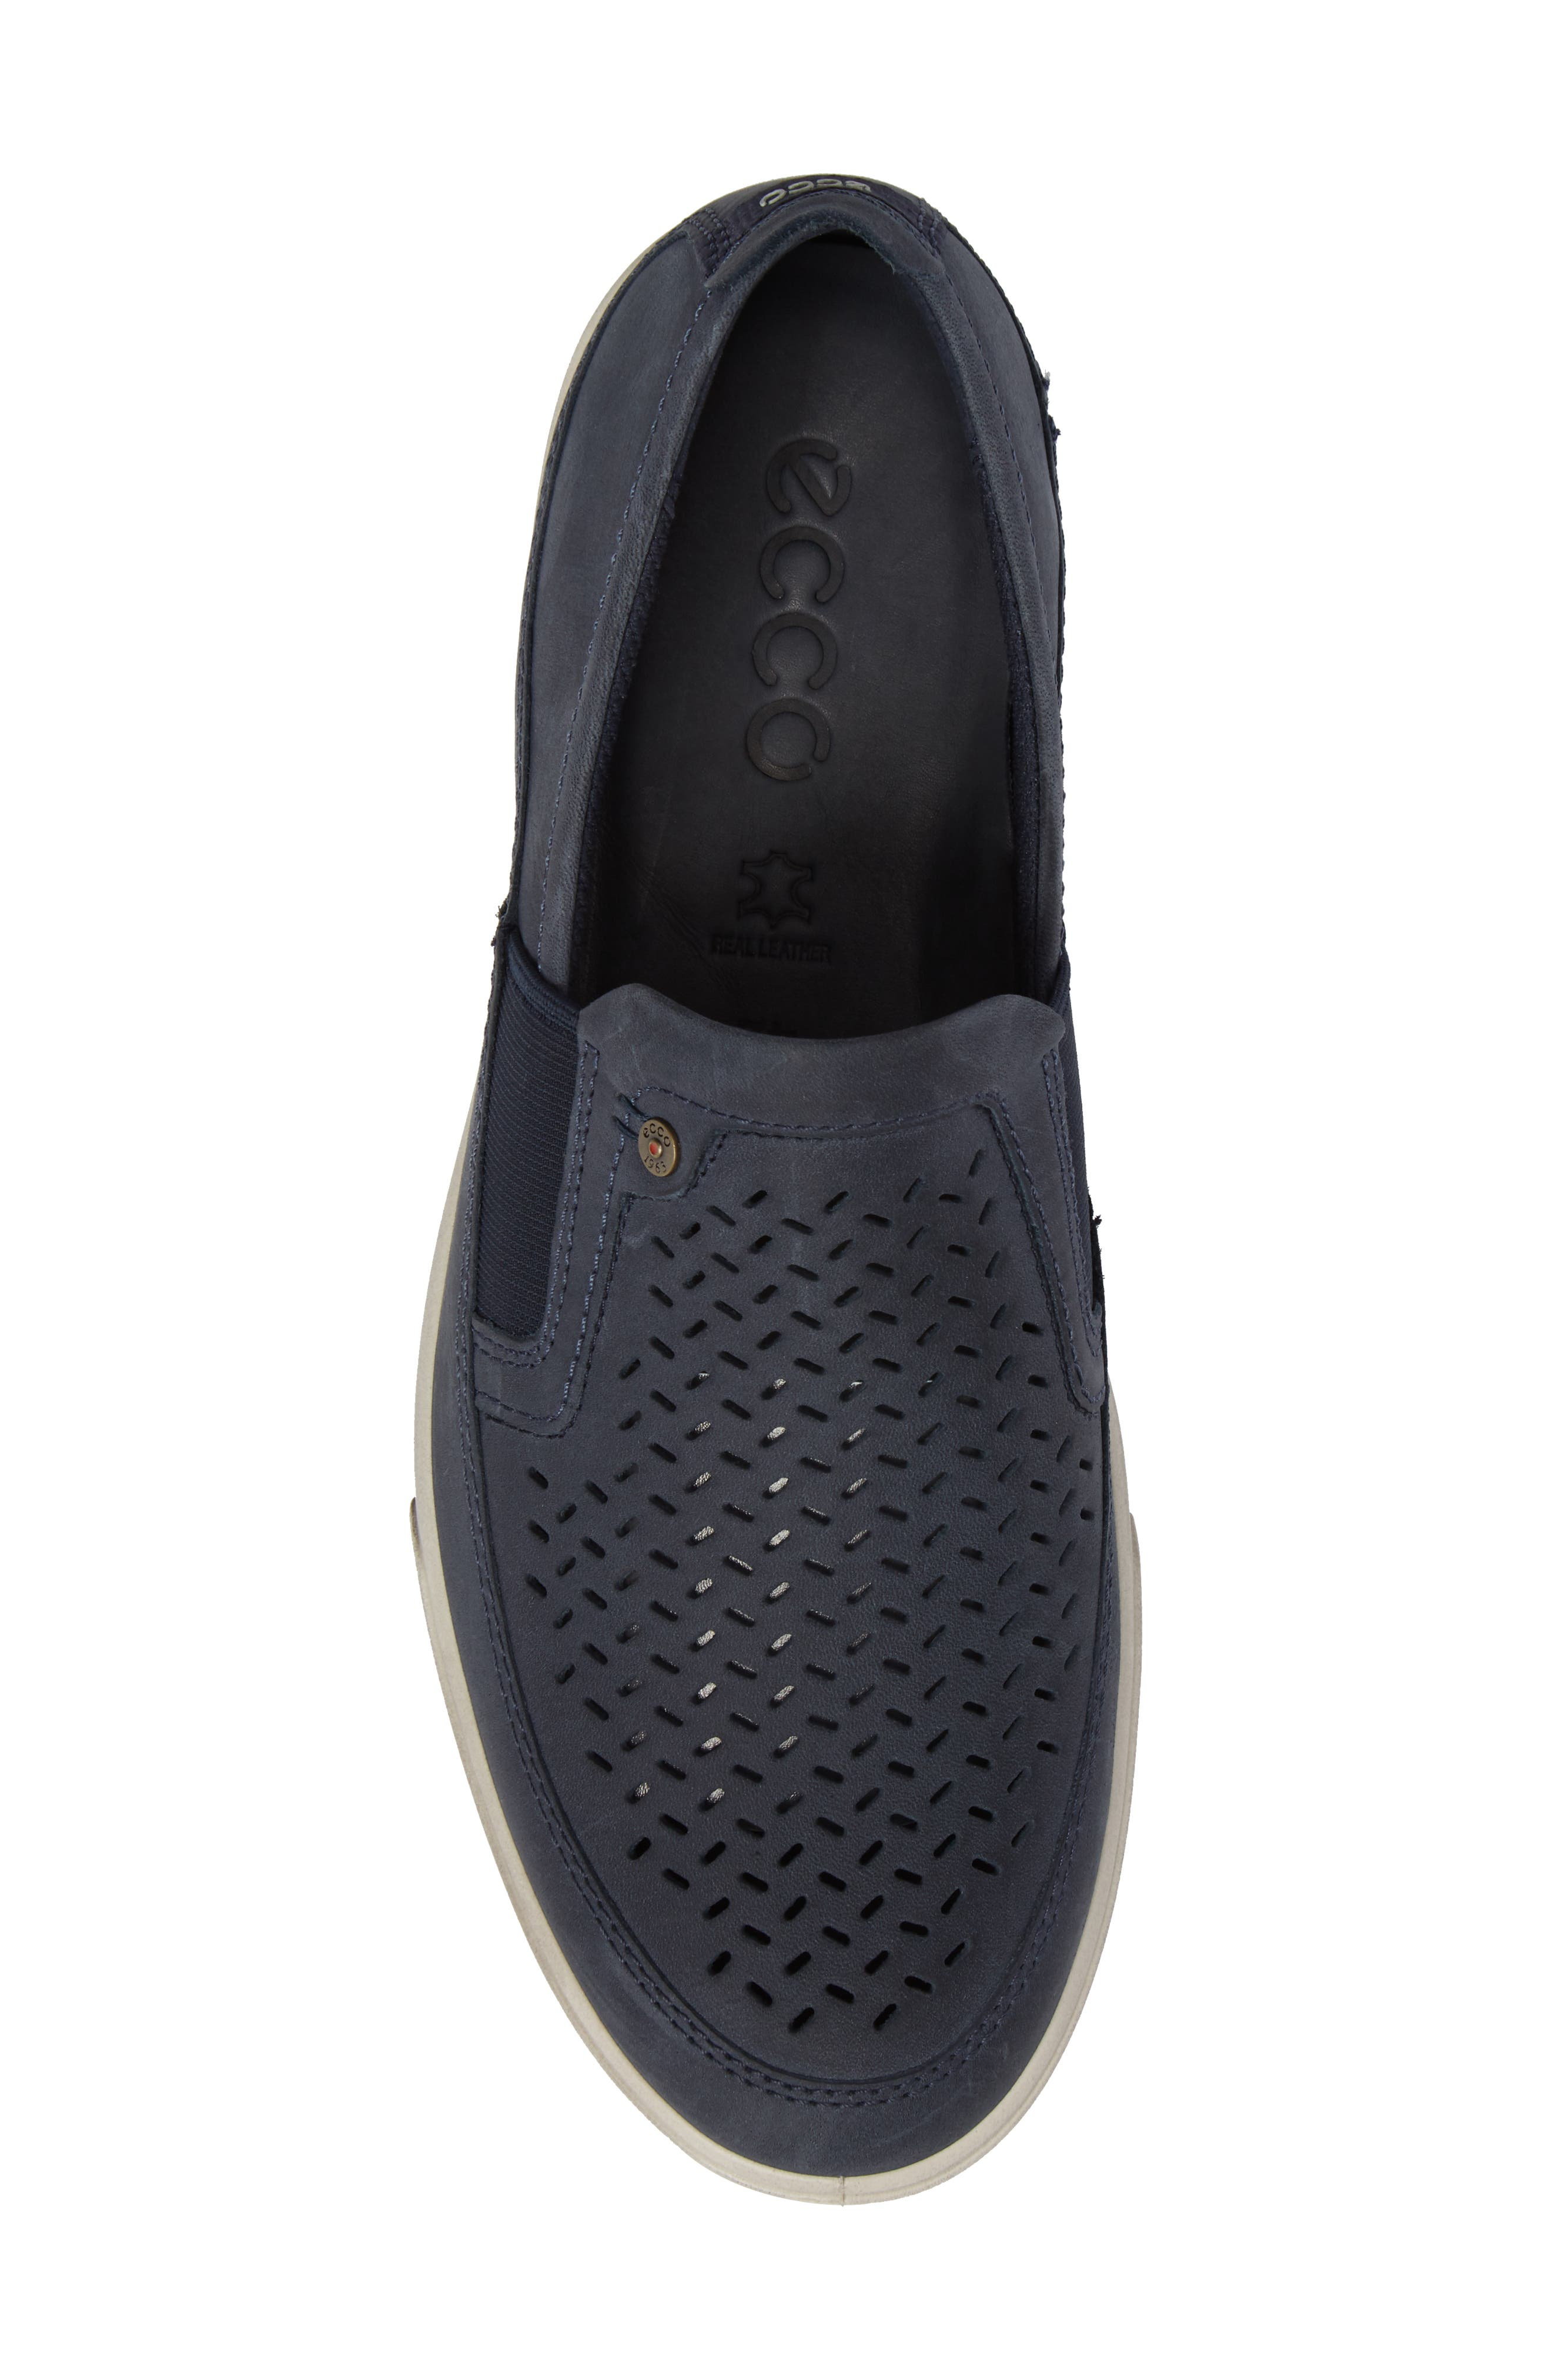 'Collin' Perforated Slip On Sneaker,                             Alternate thumbnail 5, color,                             MARINE LEATHER